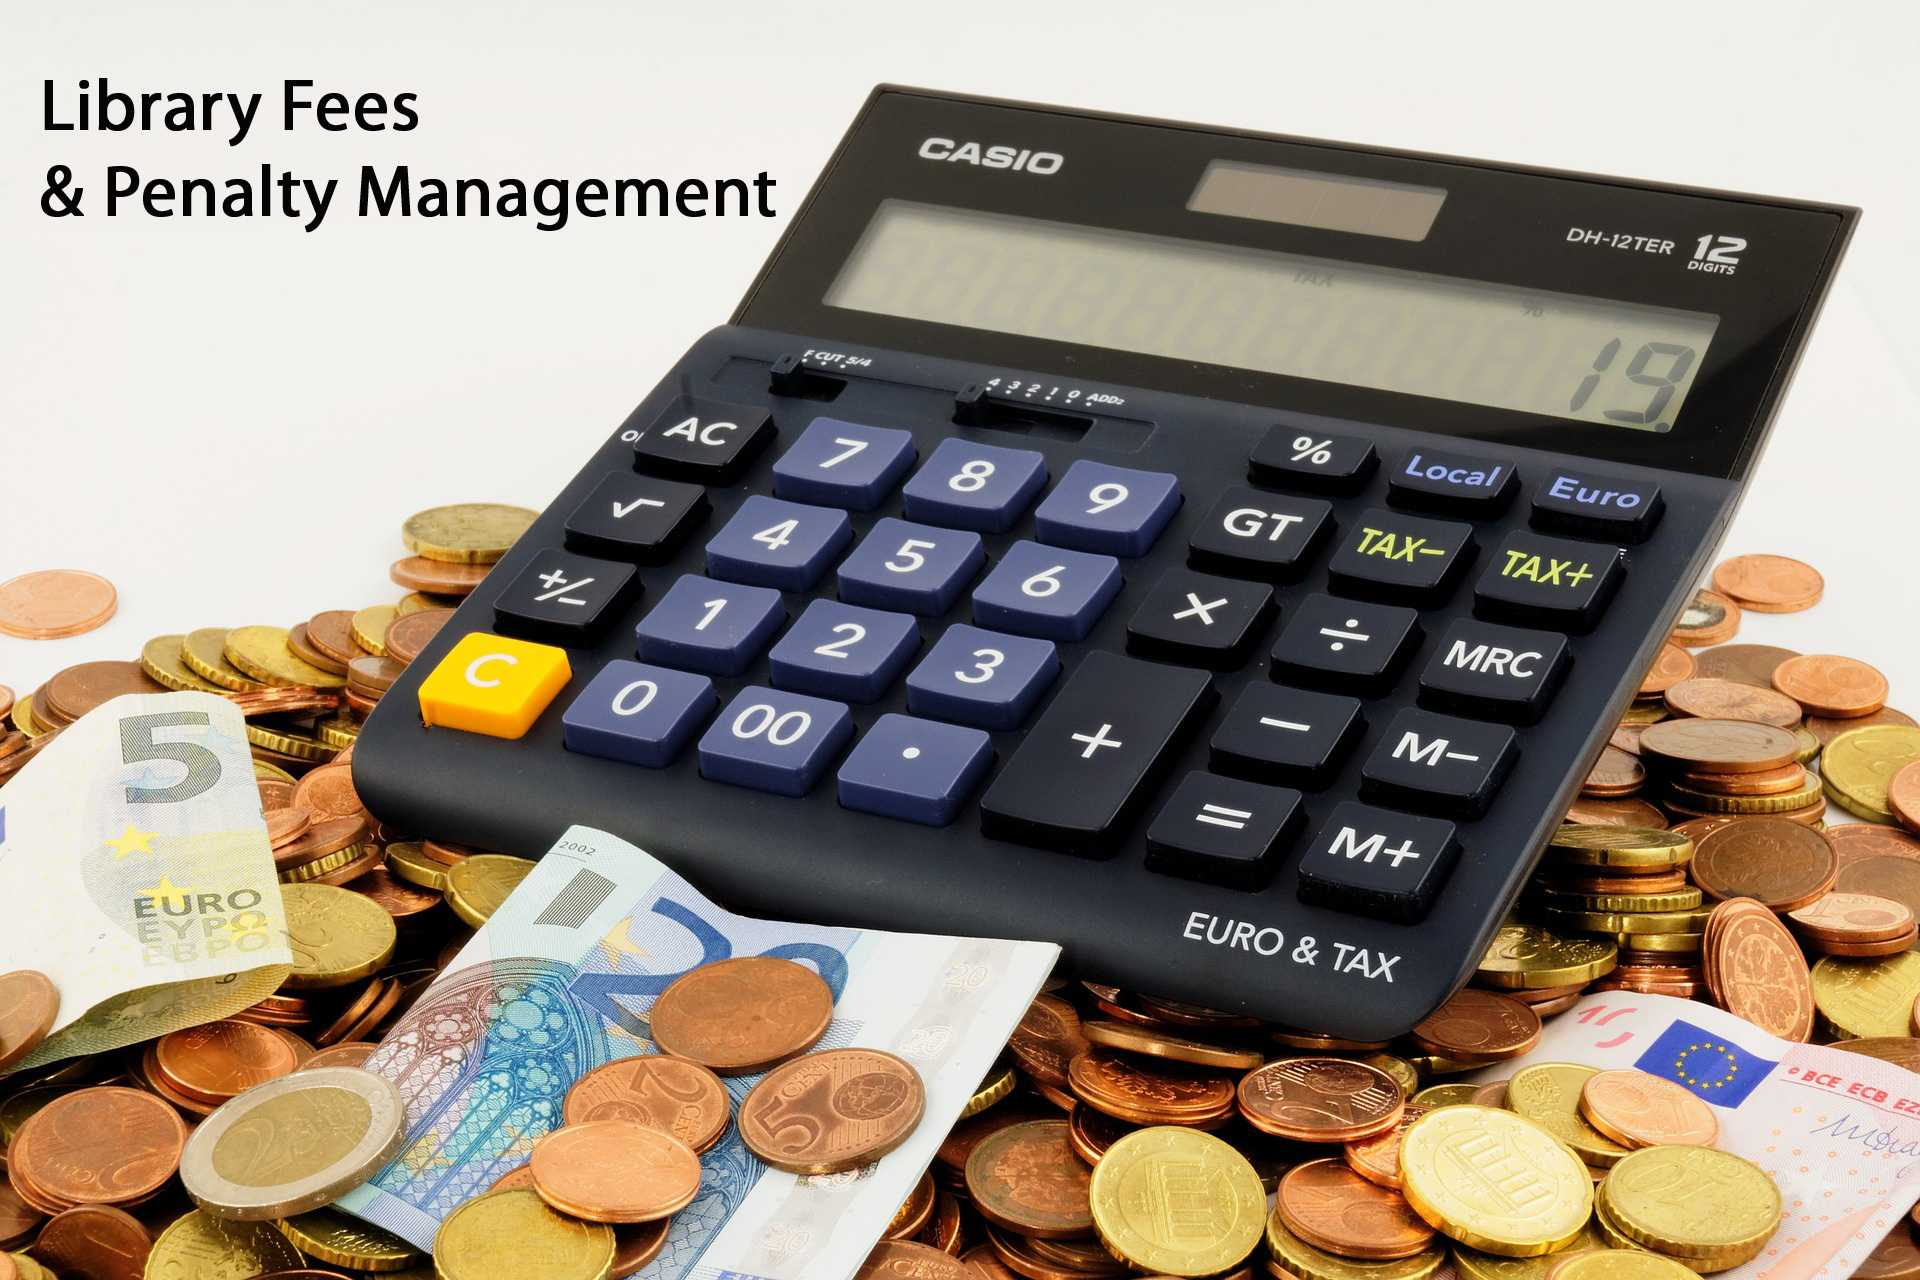 Library fees management